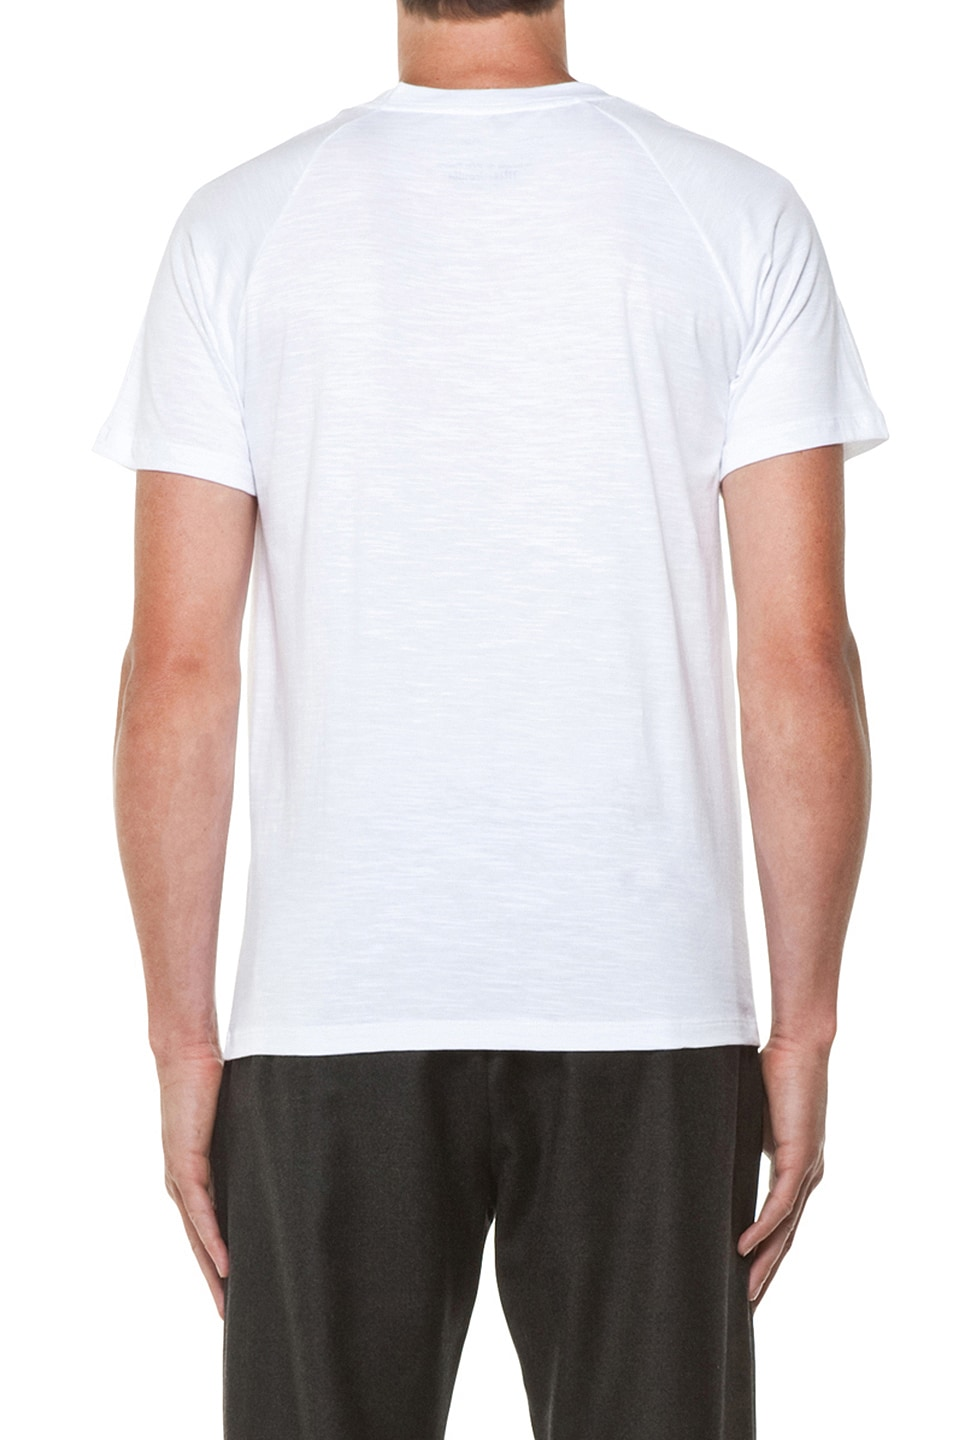 Image 4 of Kris Van Assche Crew Neck Tee in White